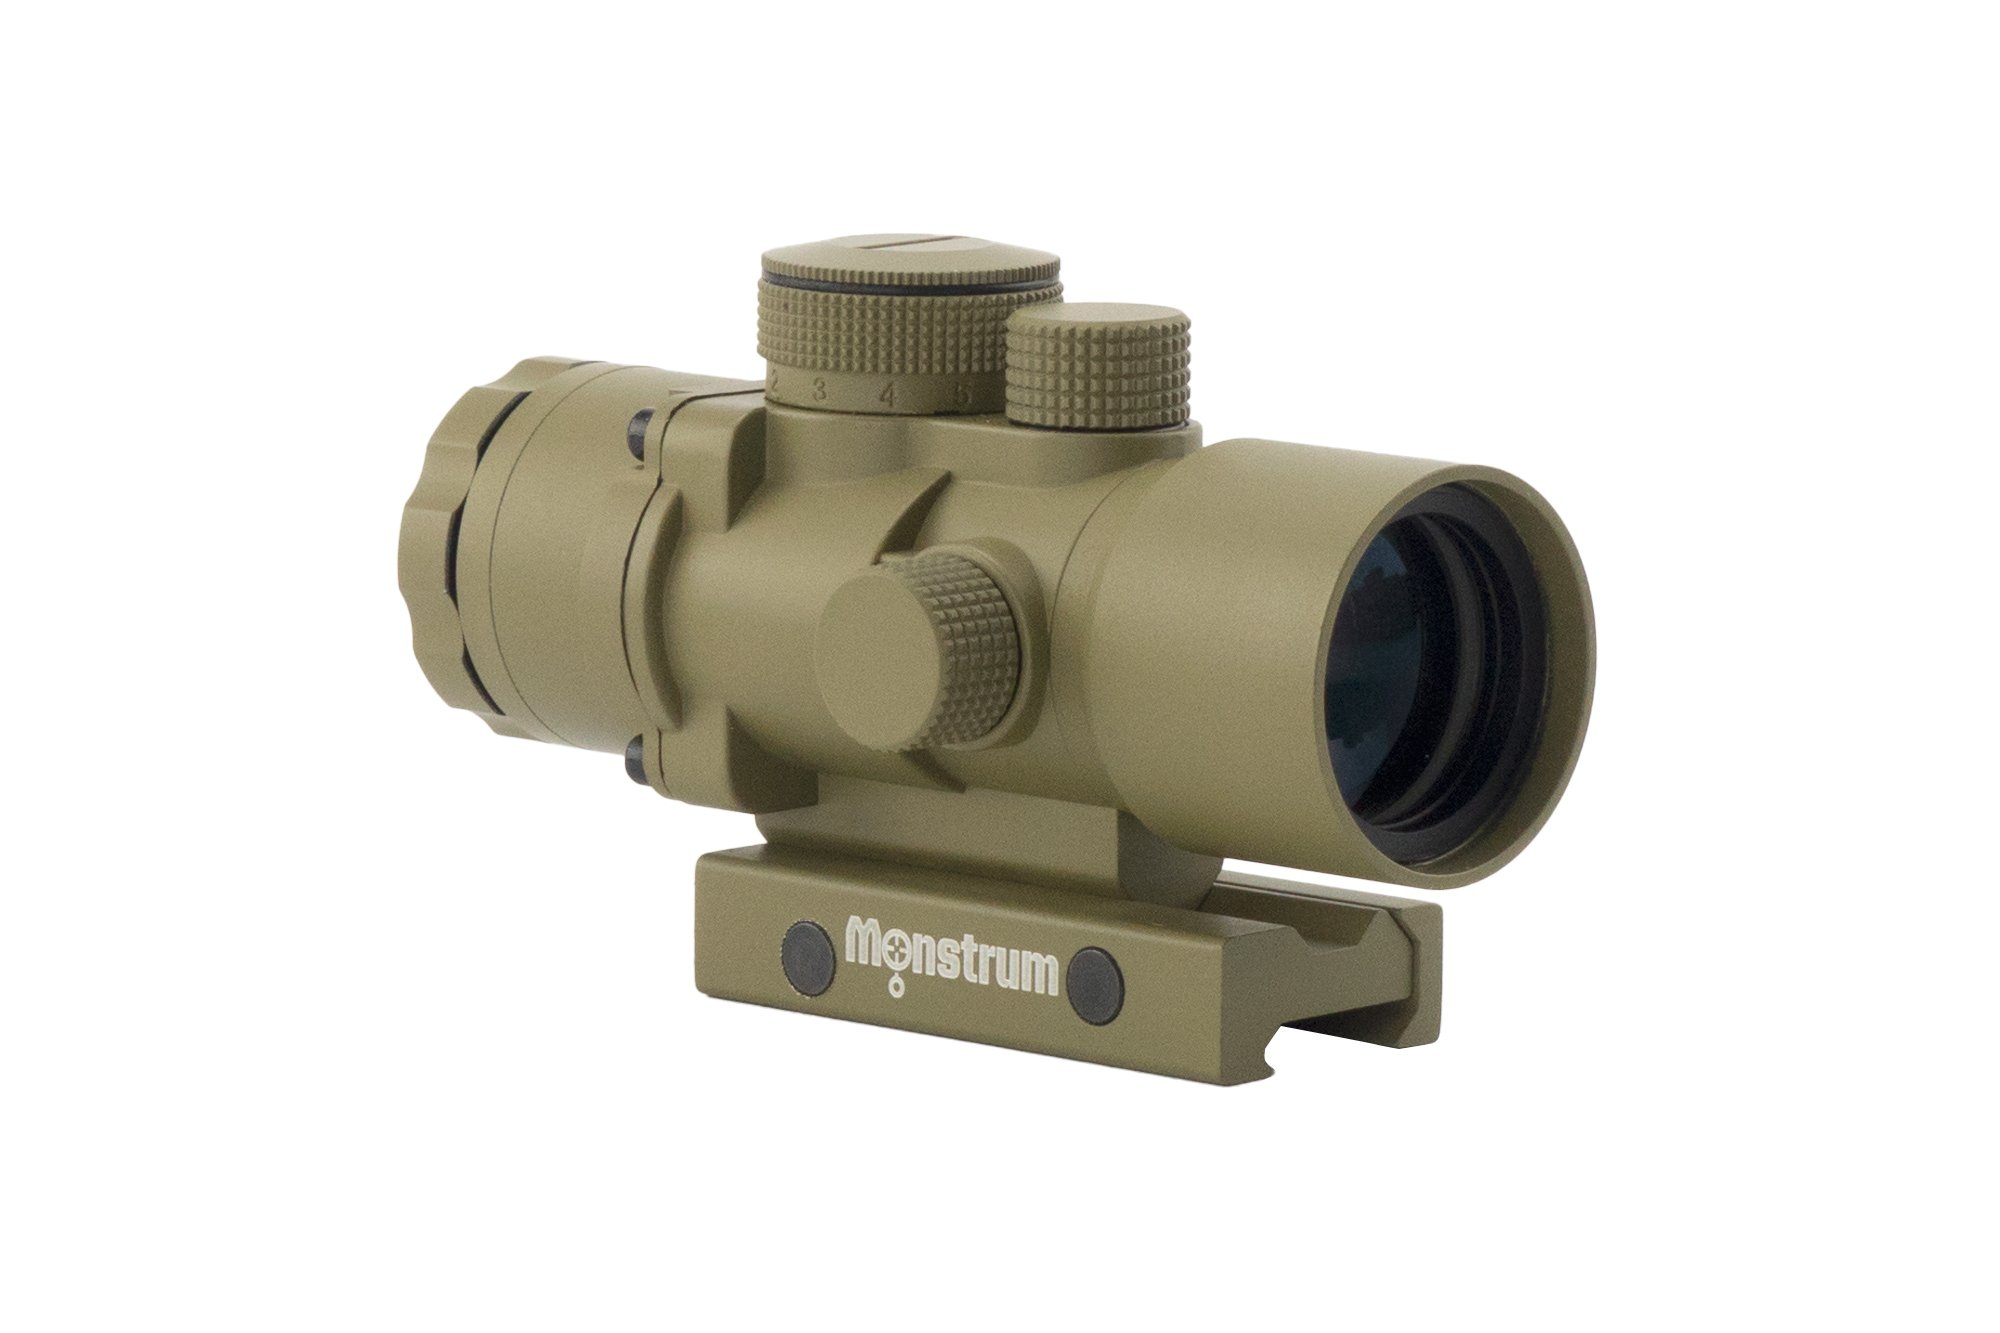 Monstrum Tactical S330P Ultra-Compact 3x Prism Scope (Flat Dark Earth)